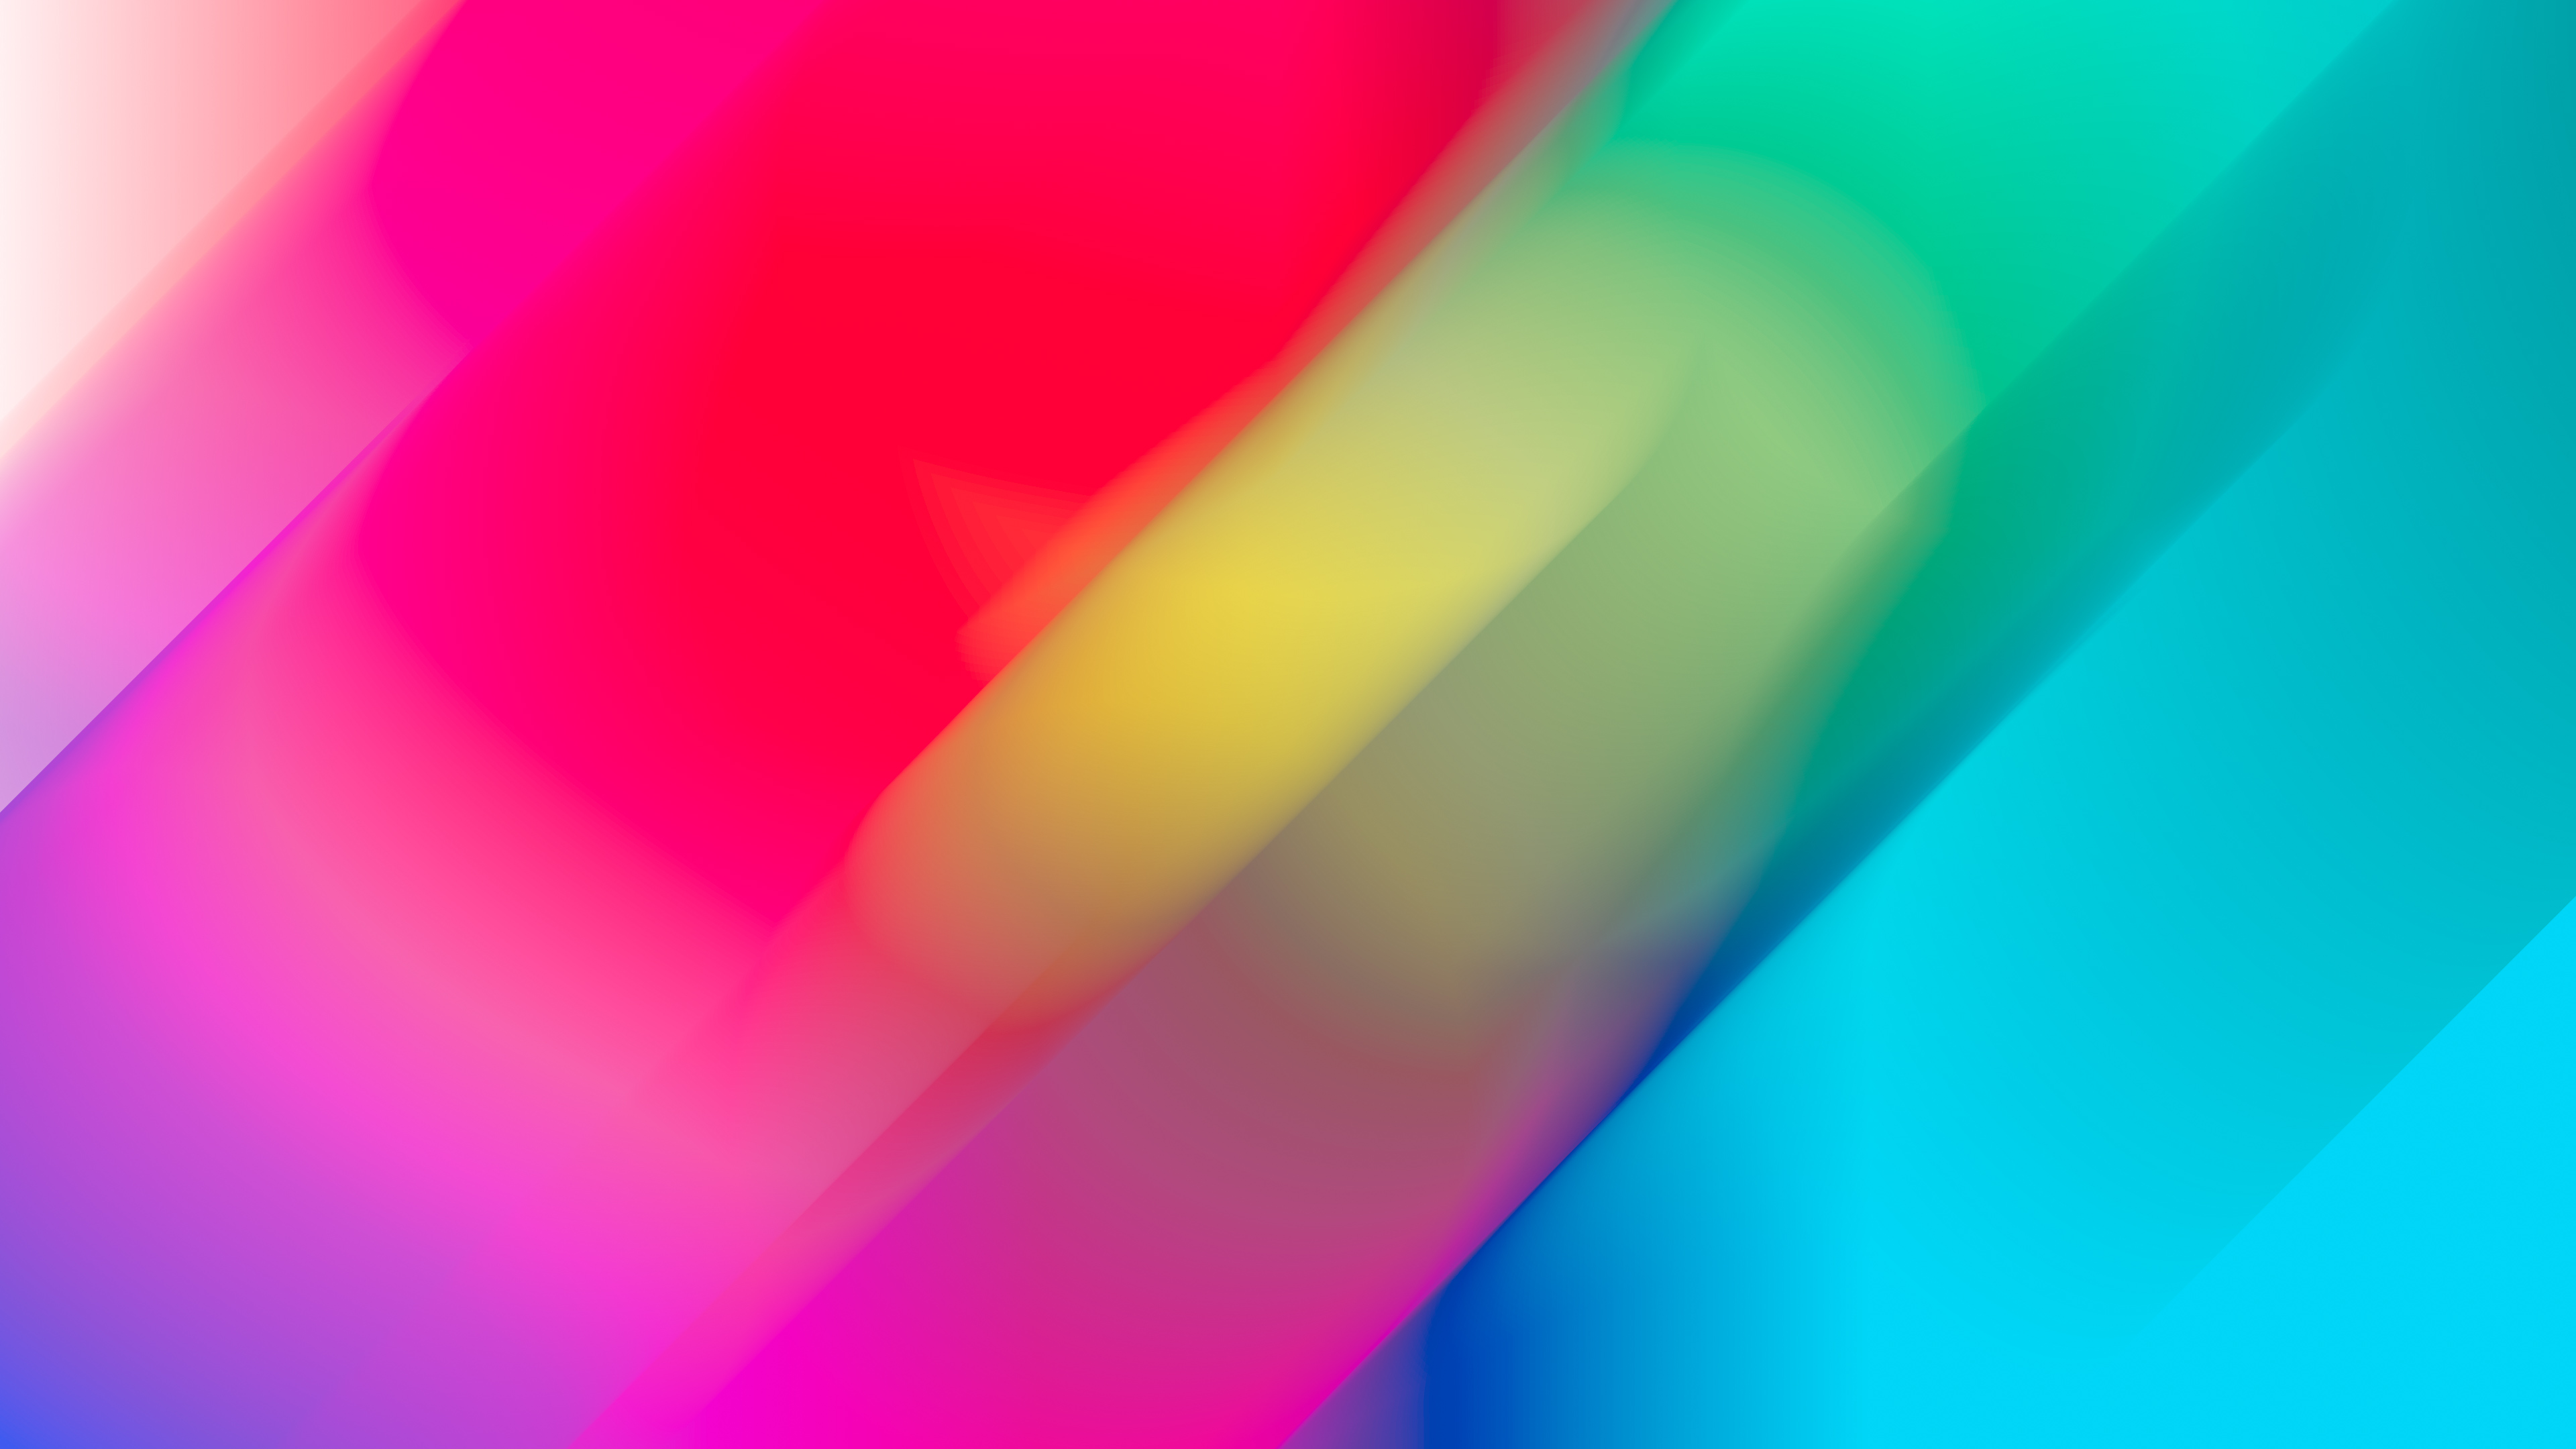 Abstract Colors 3840x2160